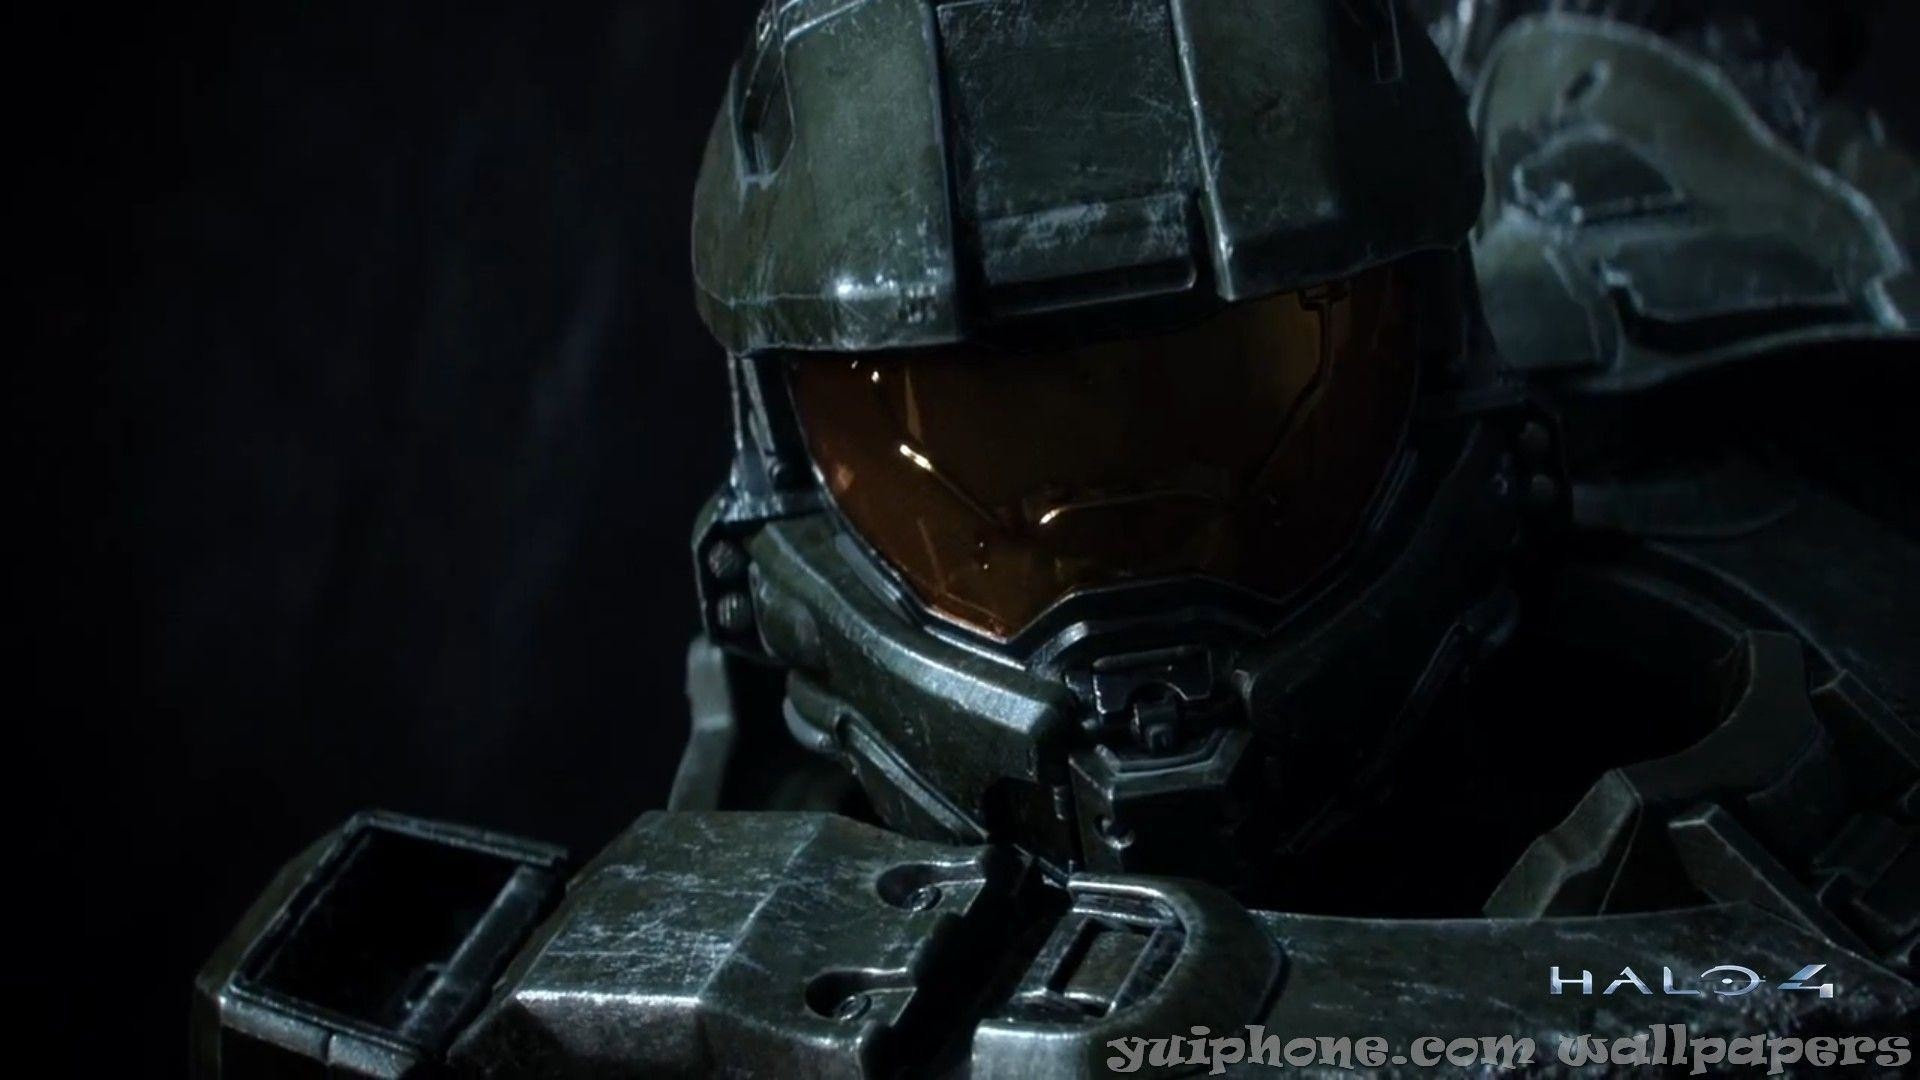 1920x1080 Images For > Halo 4 Master Chief Wallpaper